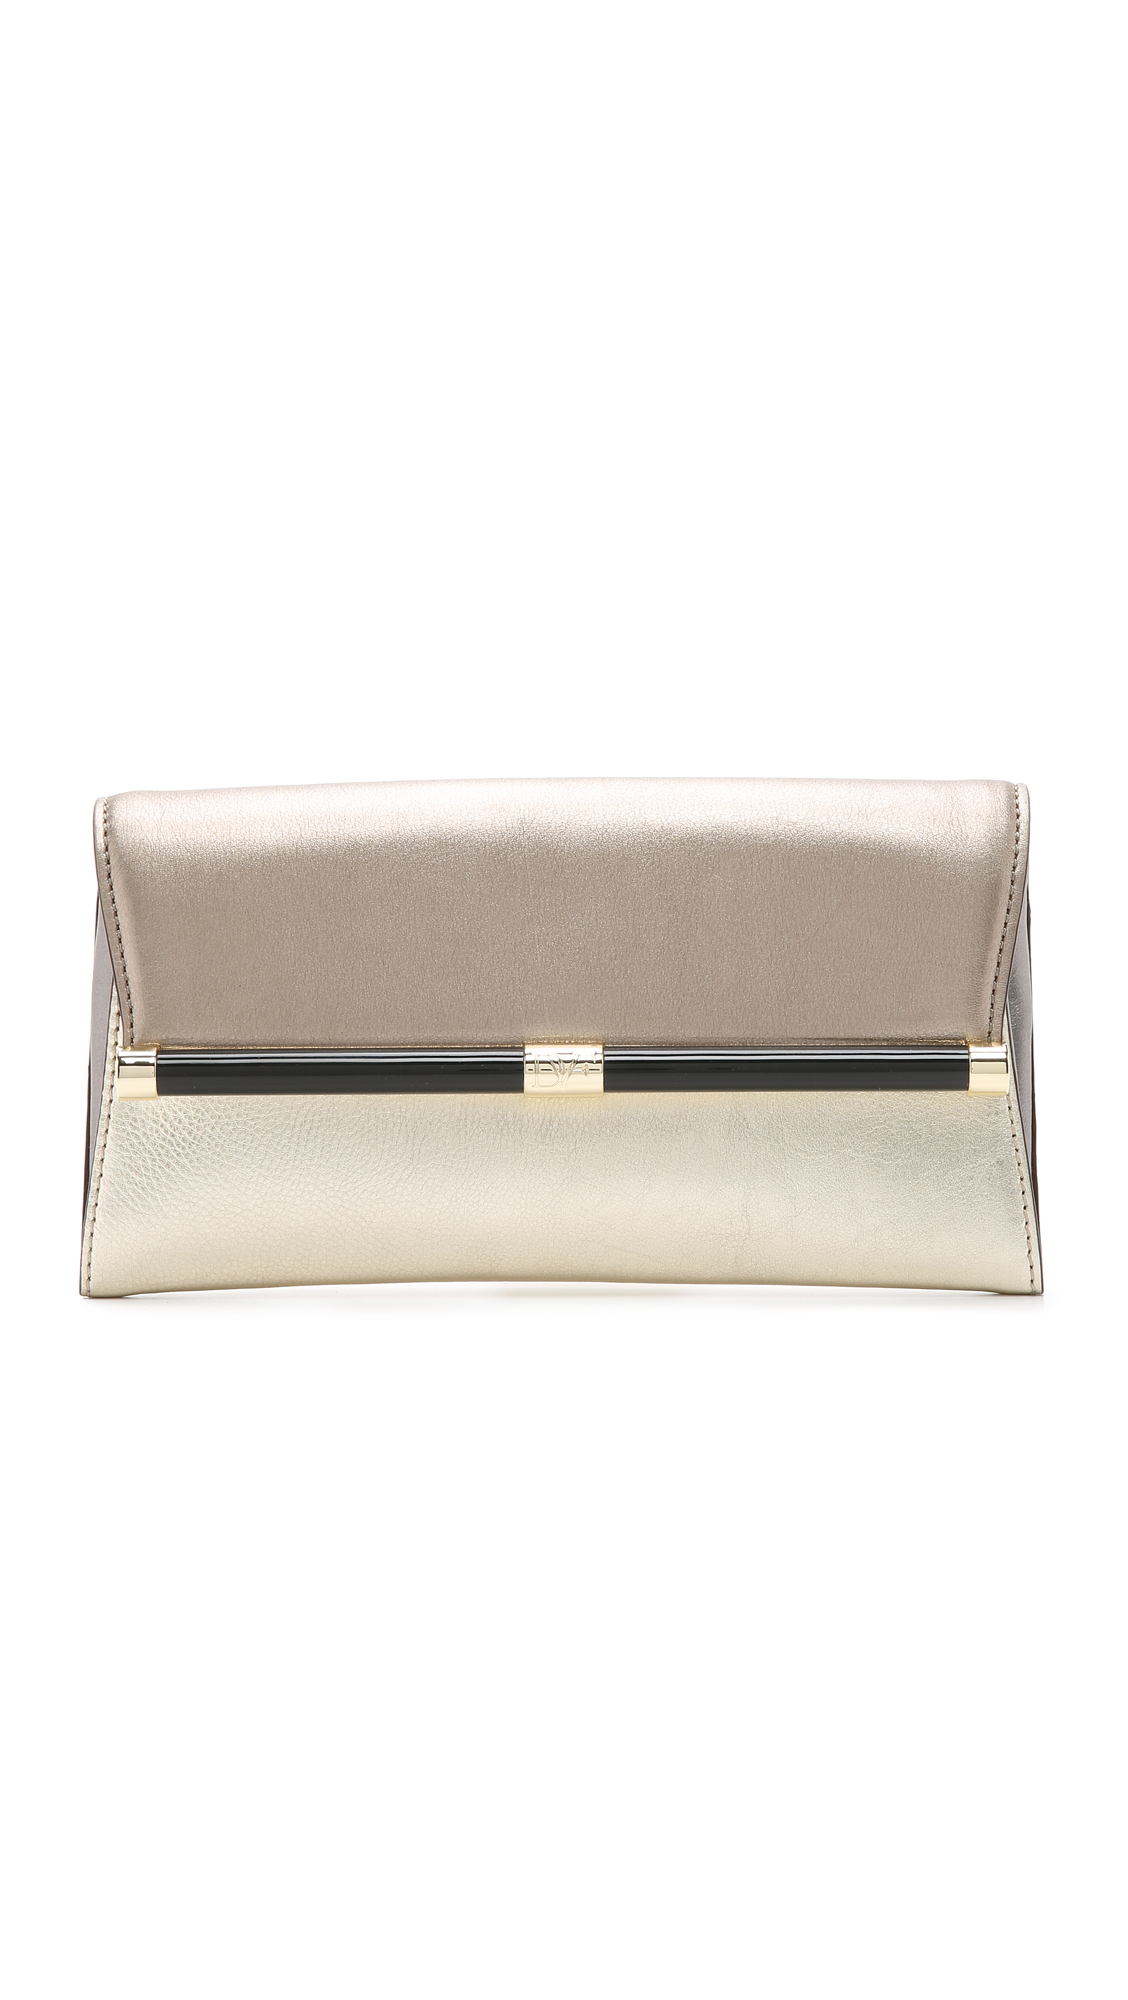 A refined DVF clutch in colorblocked metallic leather. Back pocket and magnetic front flap. The logo lined interior includes a zip compartment. Dust bag included. Leather: Cowhide. Weight: 12oz / 0.34kg. Imported, China. Measurements Height: 5in / 13cm